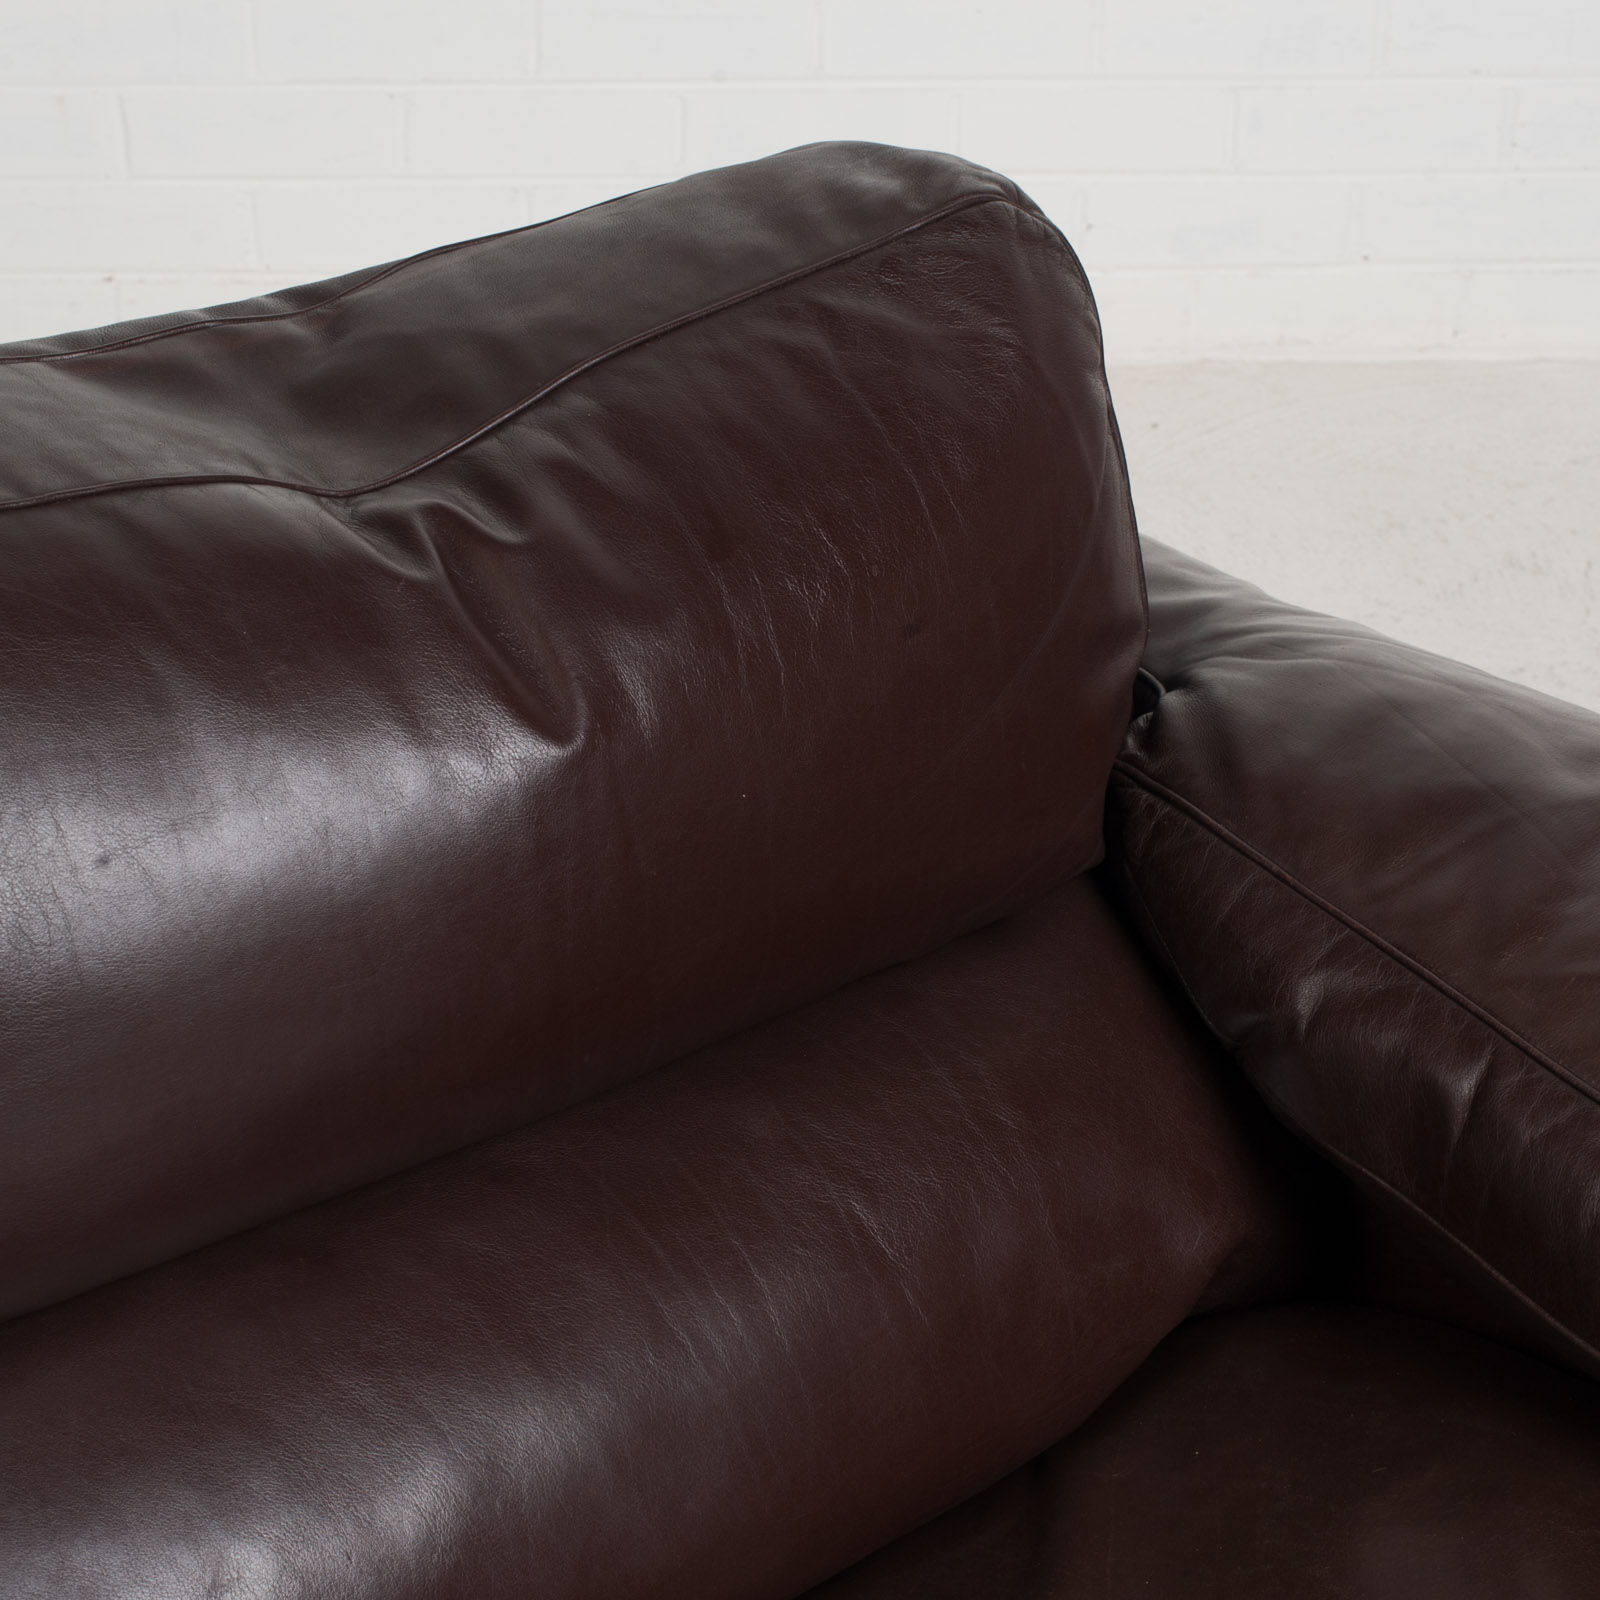 2 Seat Sofa By Tito Agnoli For Poltrona Frau In Chocolate Leather 1970s Italy 09